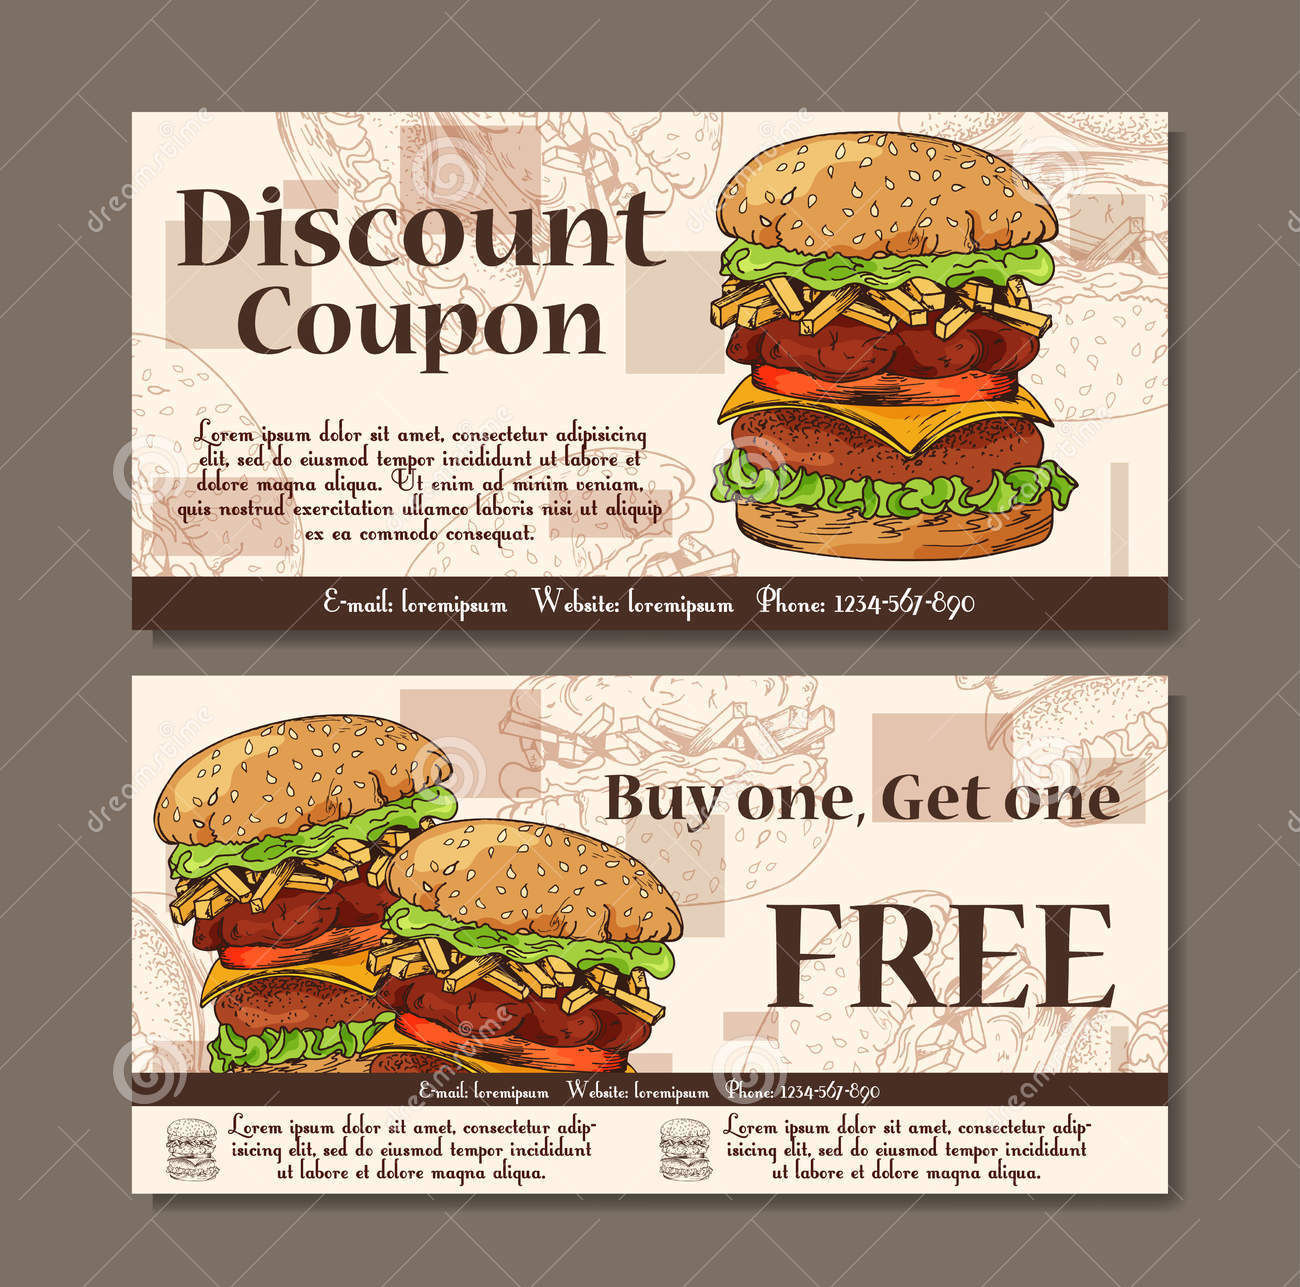 Discount coupons for restaurants in pune